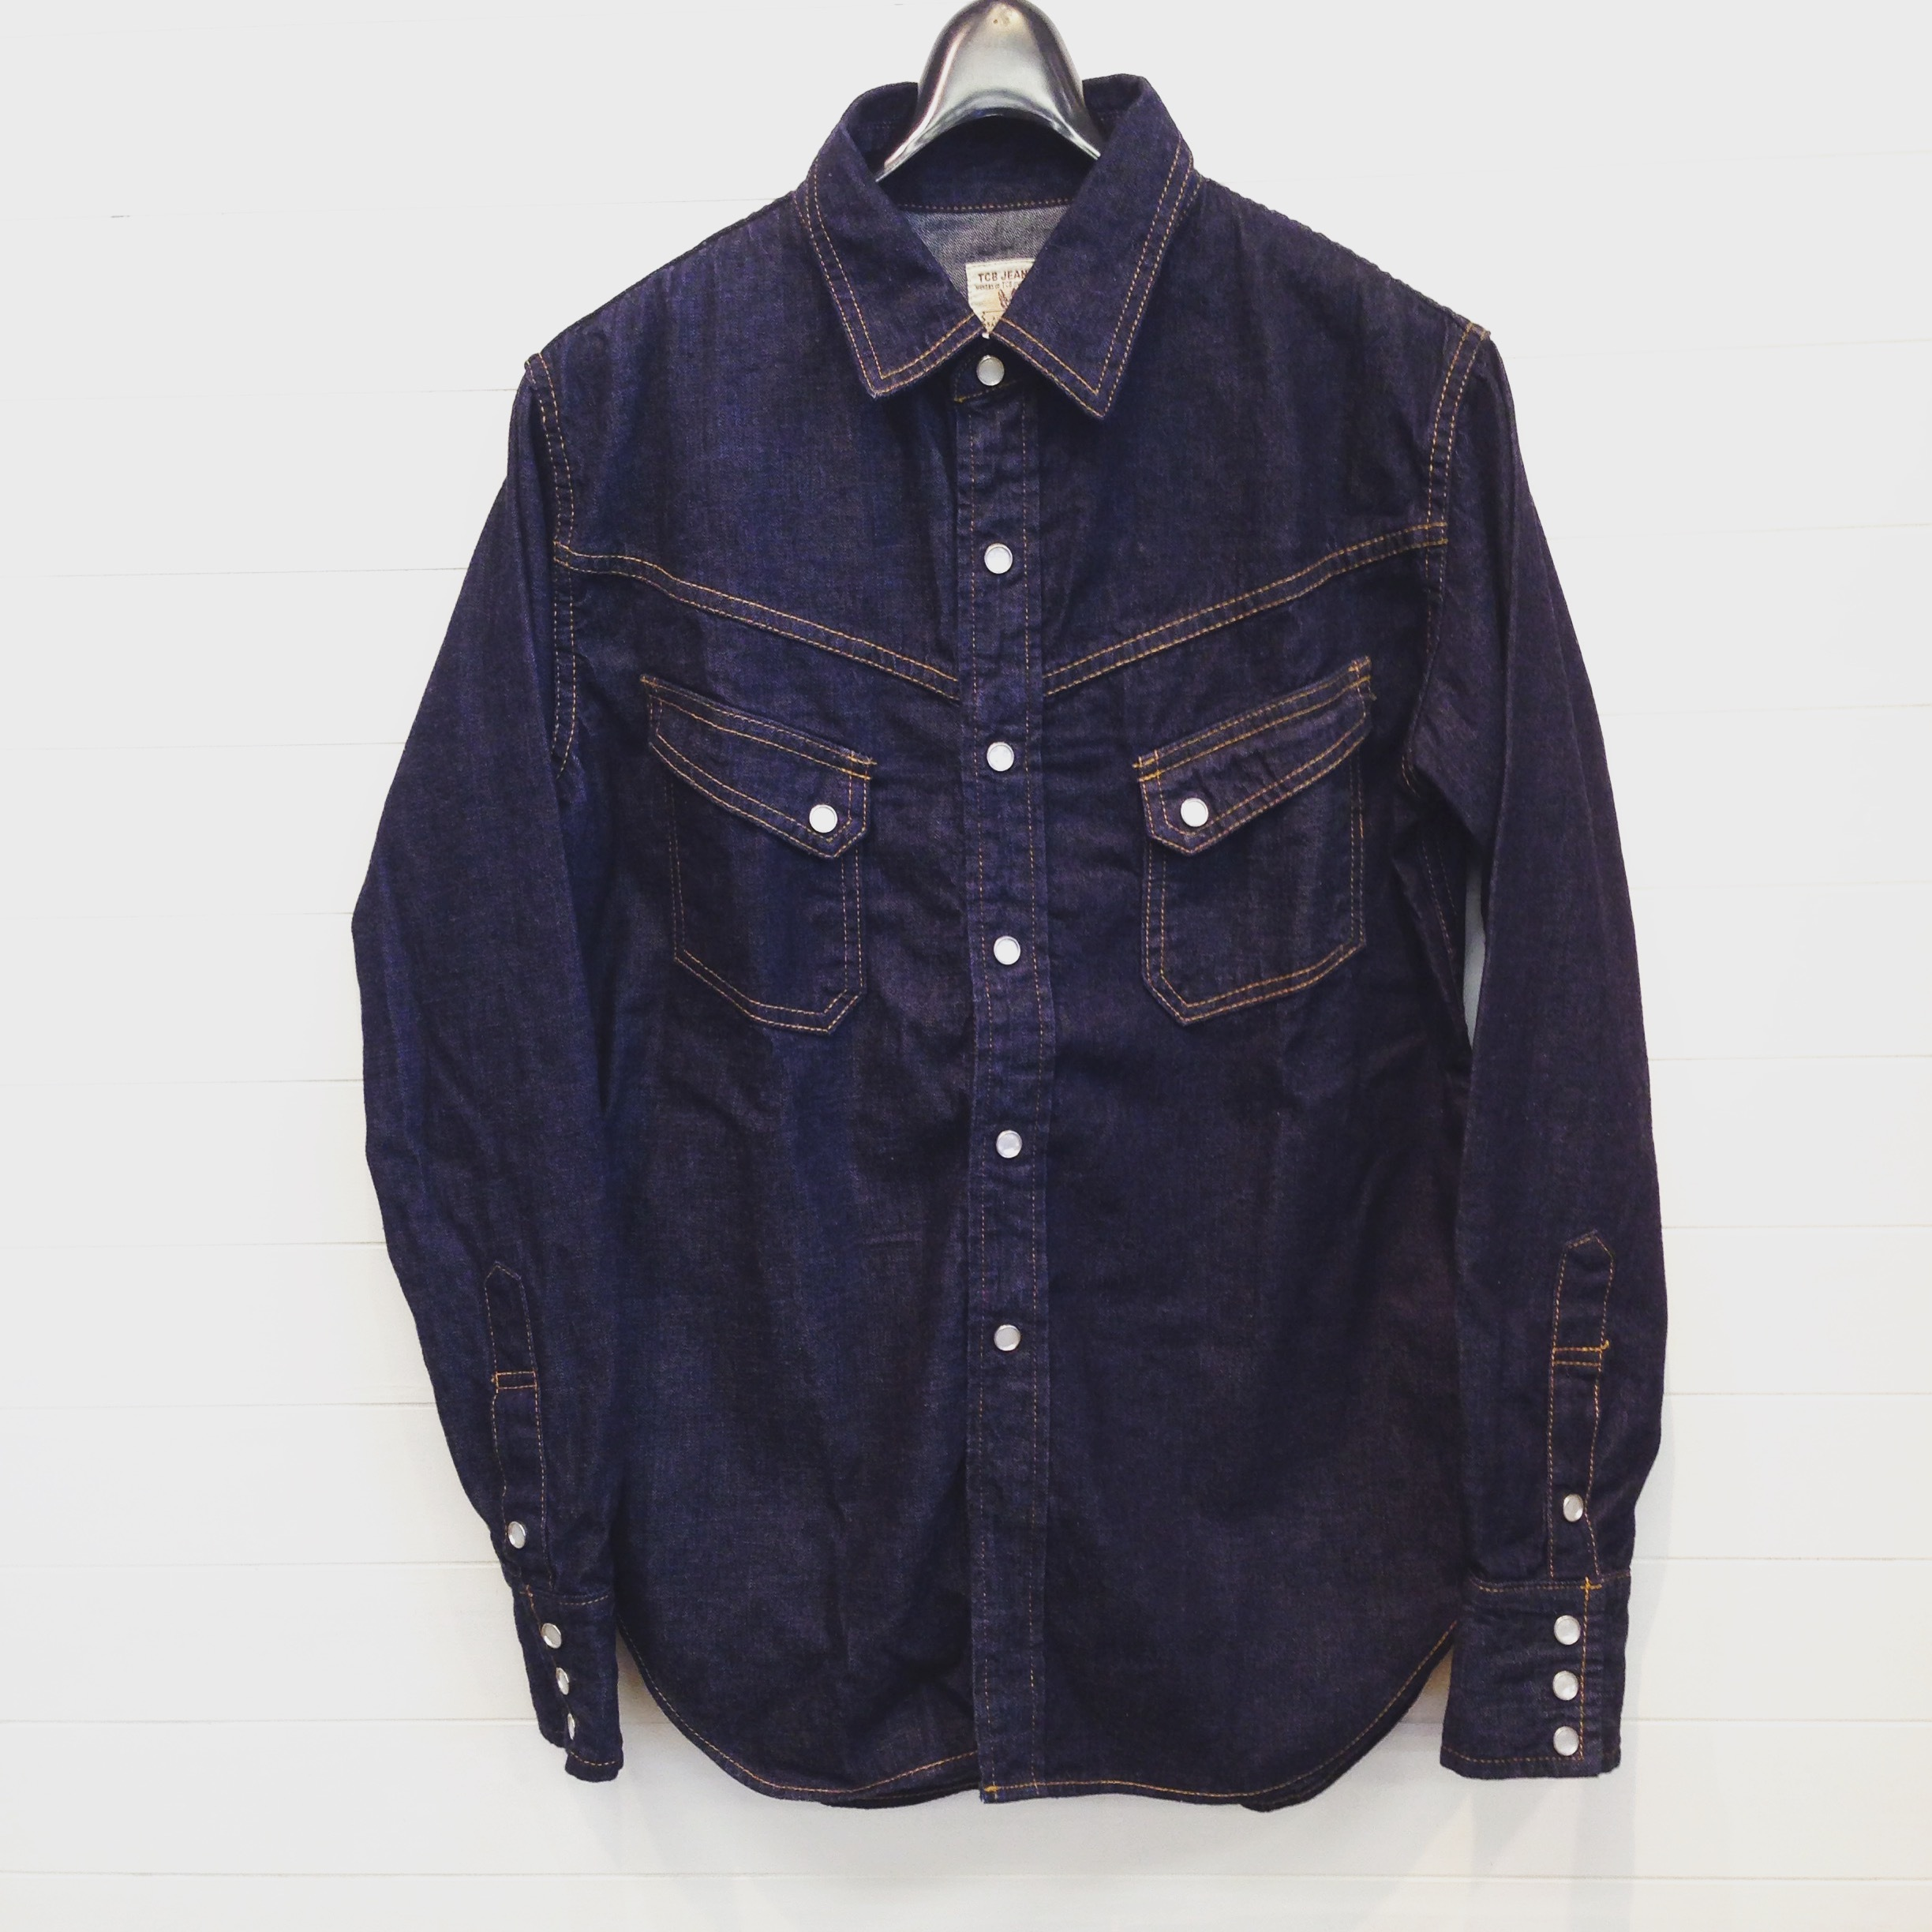 TCB(ティーシービー) RANCHMAN  SHIRT  DENIM